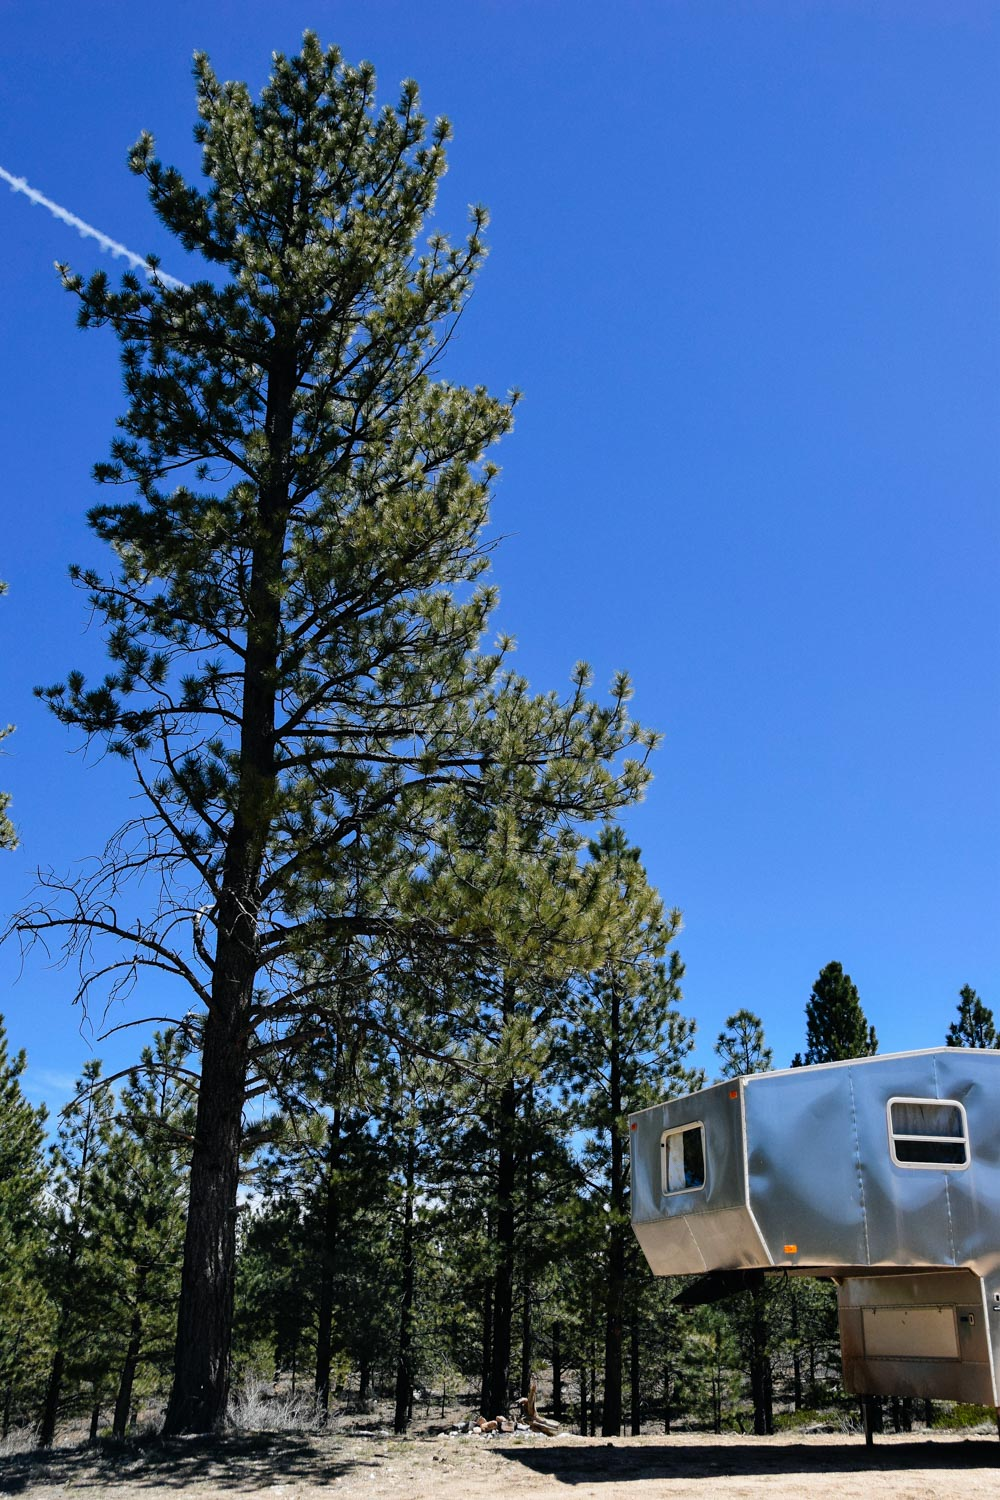 Our boondocking site at Whiteman Bench.